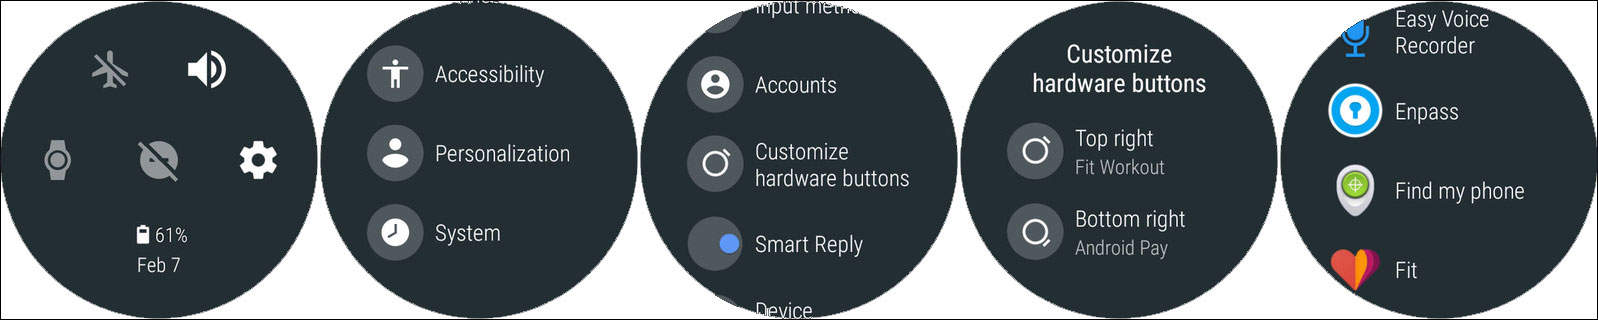 Configure or Customize Shortcut Buttons on Android Wear 2.0